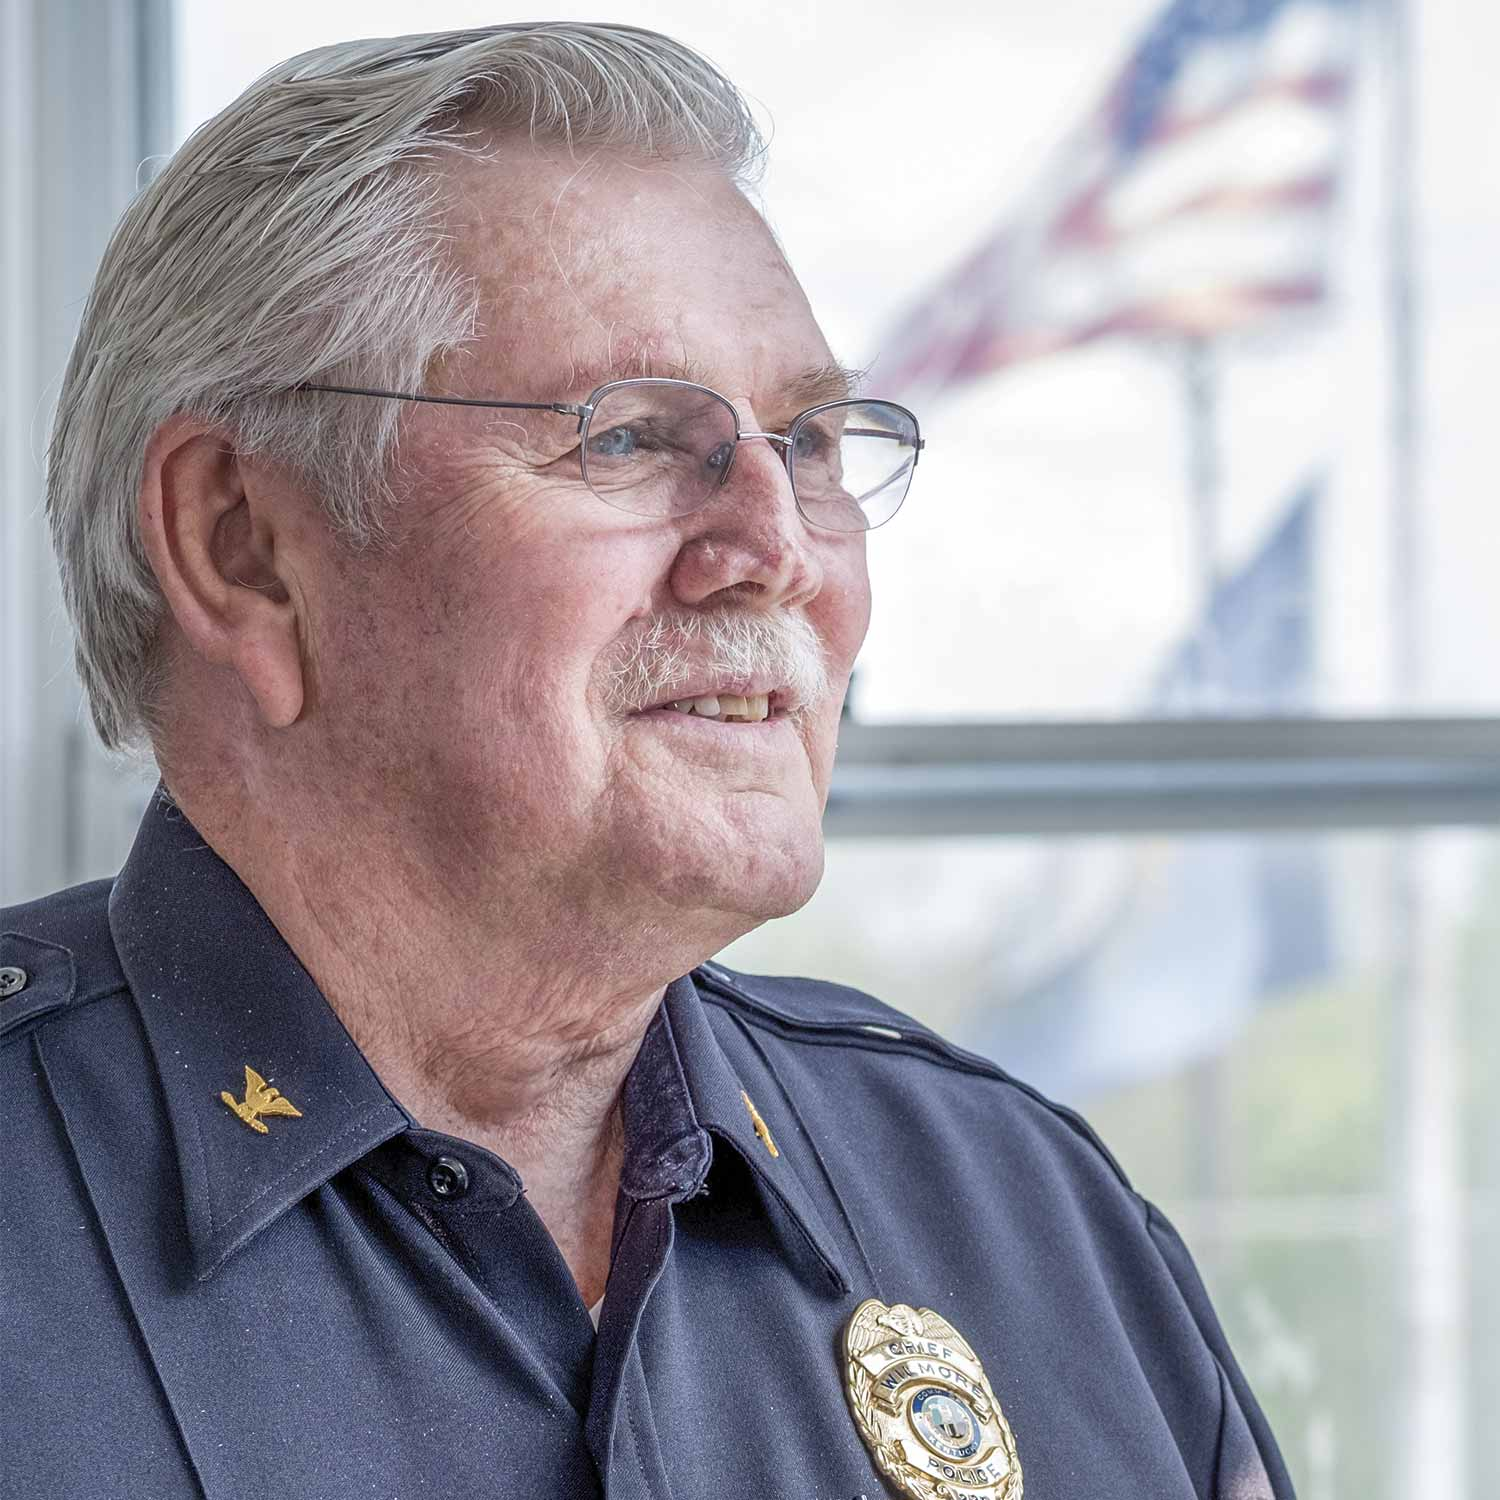 Wilmore Police Chief Bill Craig enjoys when officers in his Jessamine County agency take personal initiative and begin pursuing Career Development Program certifications. (Photo by Jim Robertson)